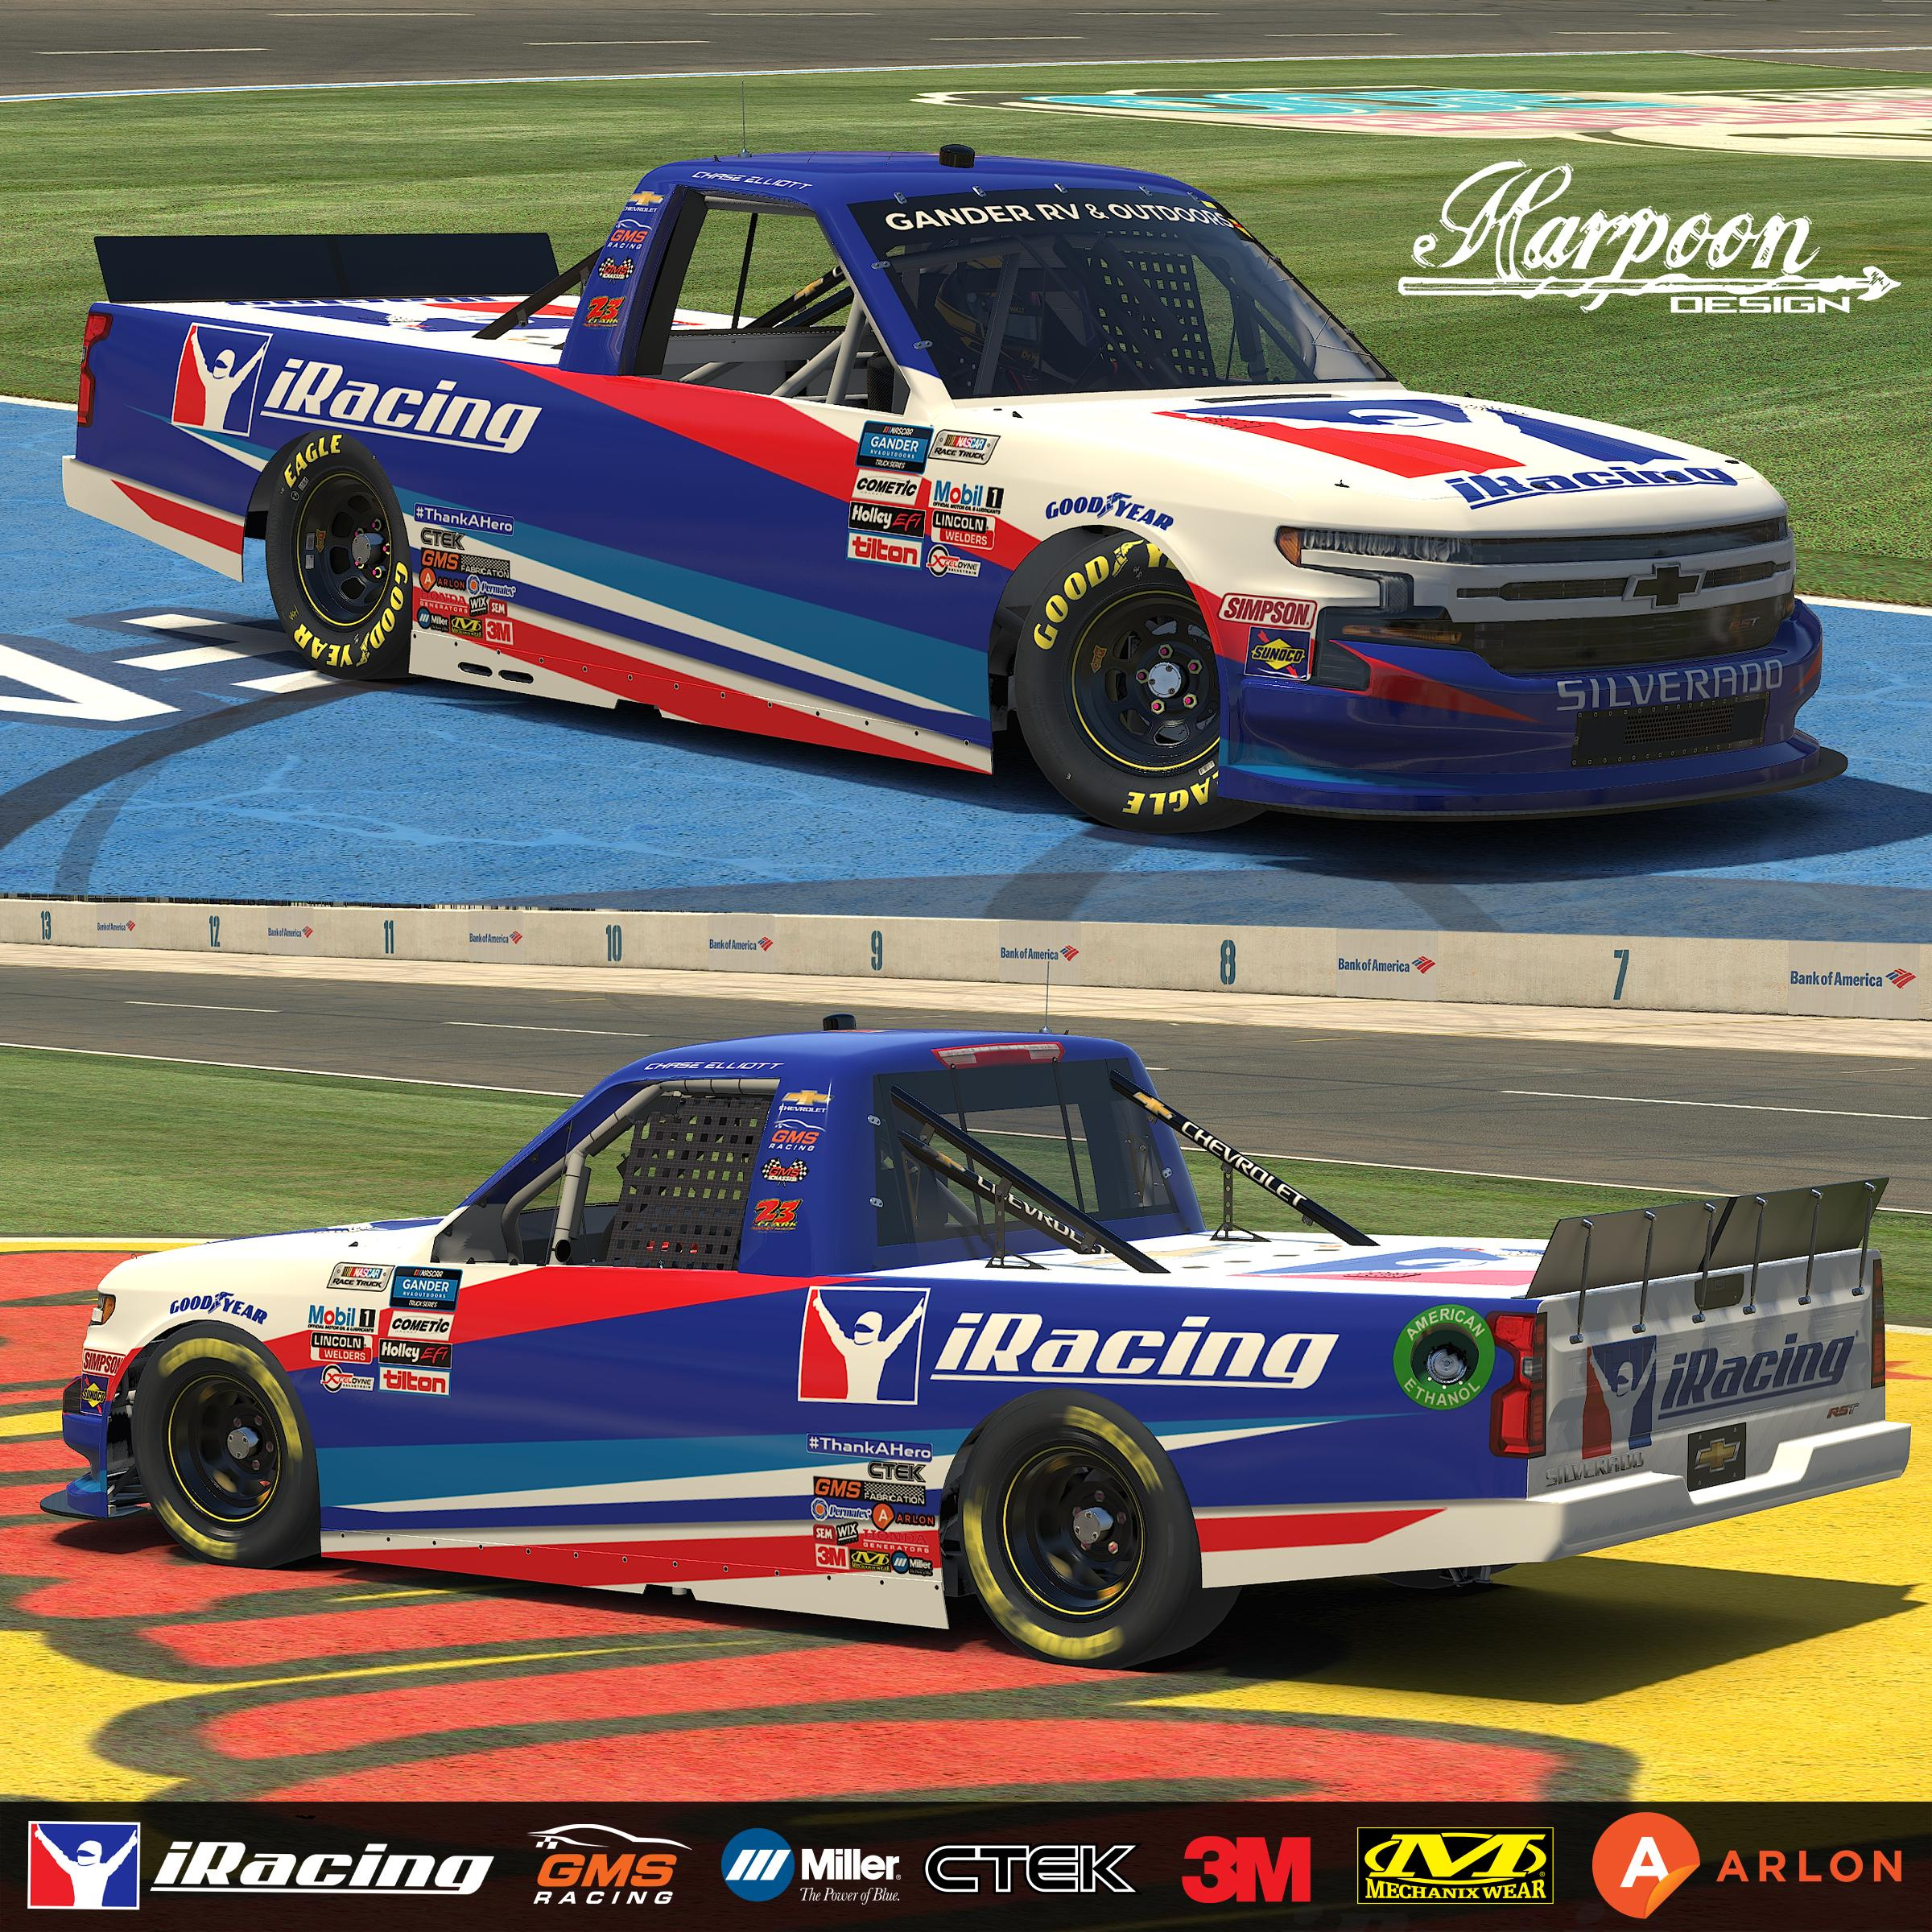 Preview of 2020 Chase Elliott iRacing Chevy Silverado no num by Brantley Roden